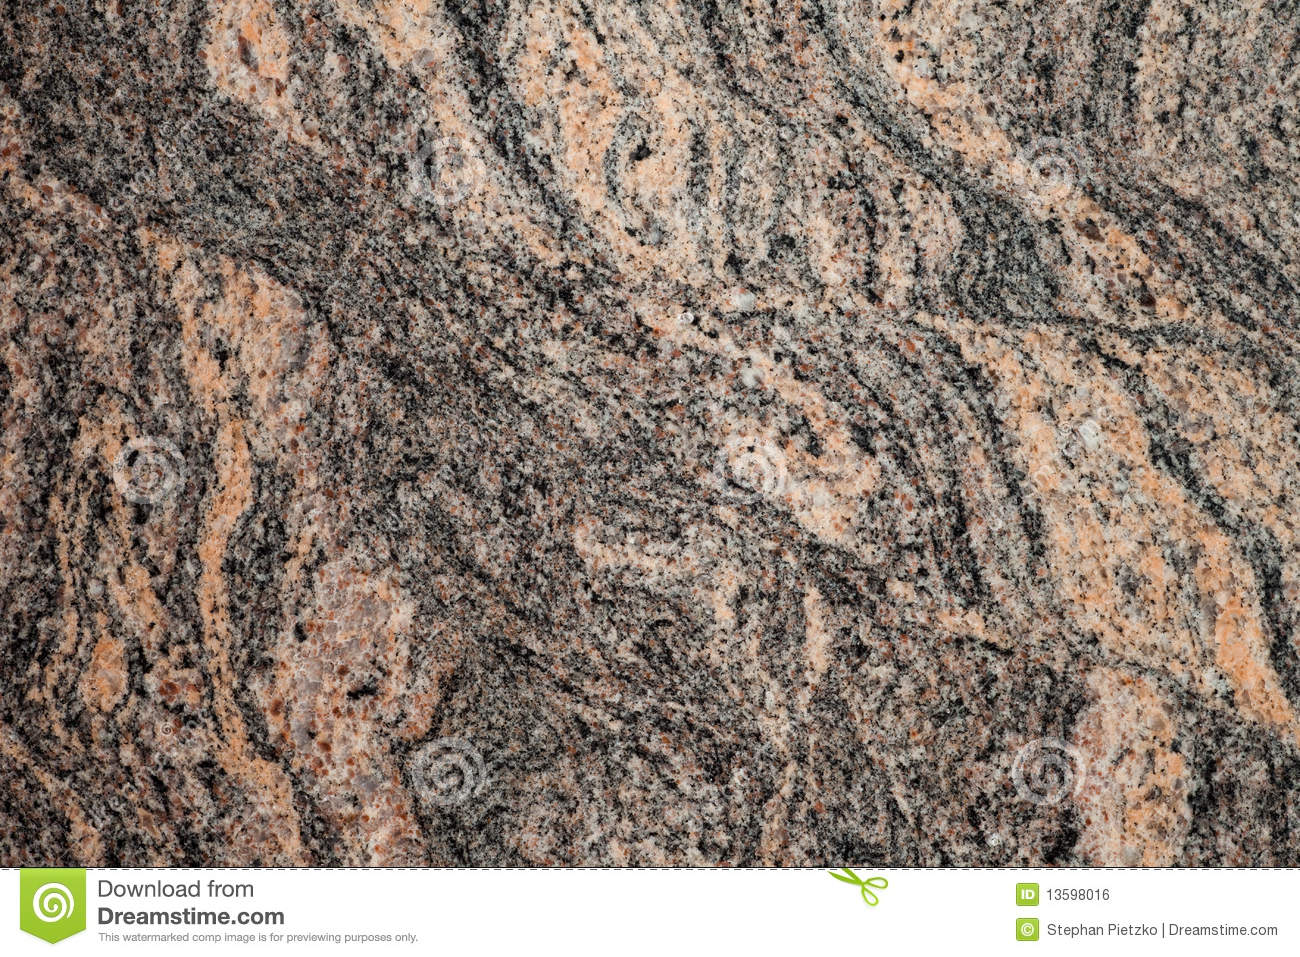 Textured Granite Countertops Surface Of Polished Granite Slab Royalty Free Stock Image